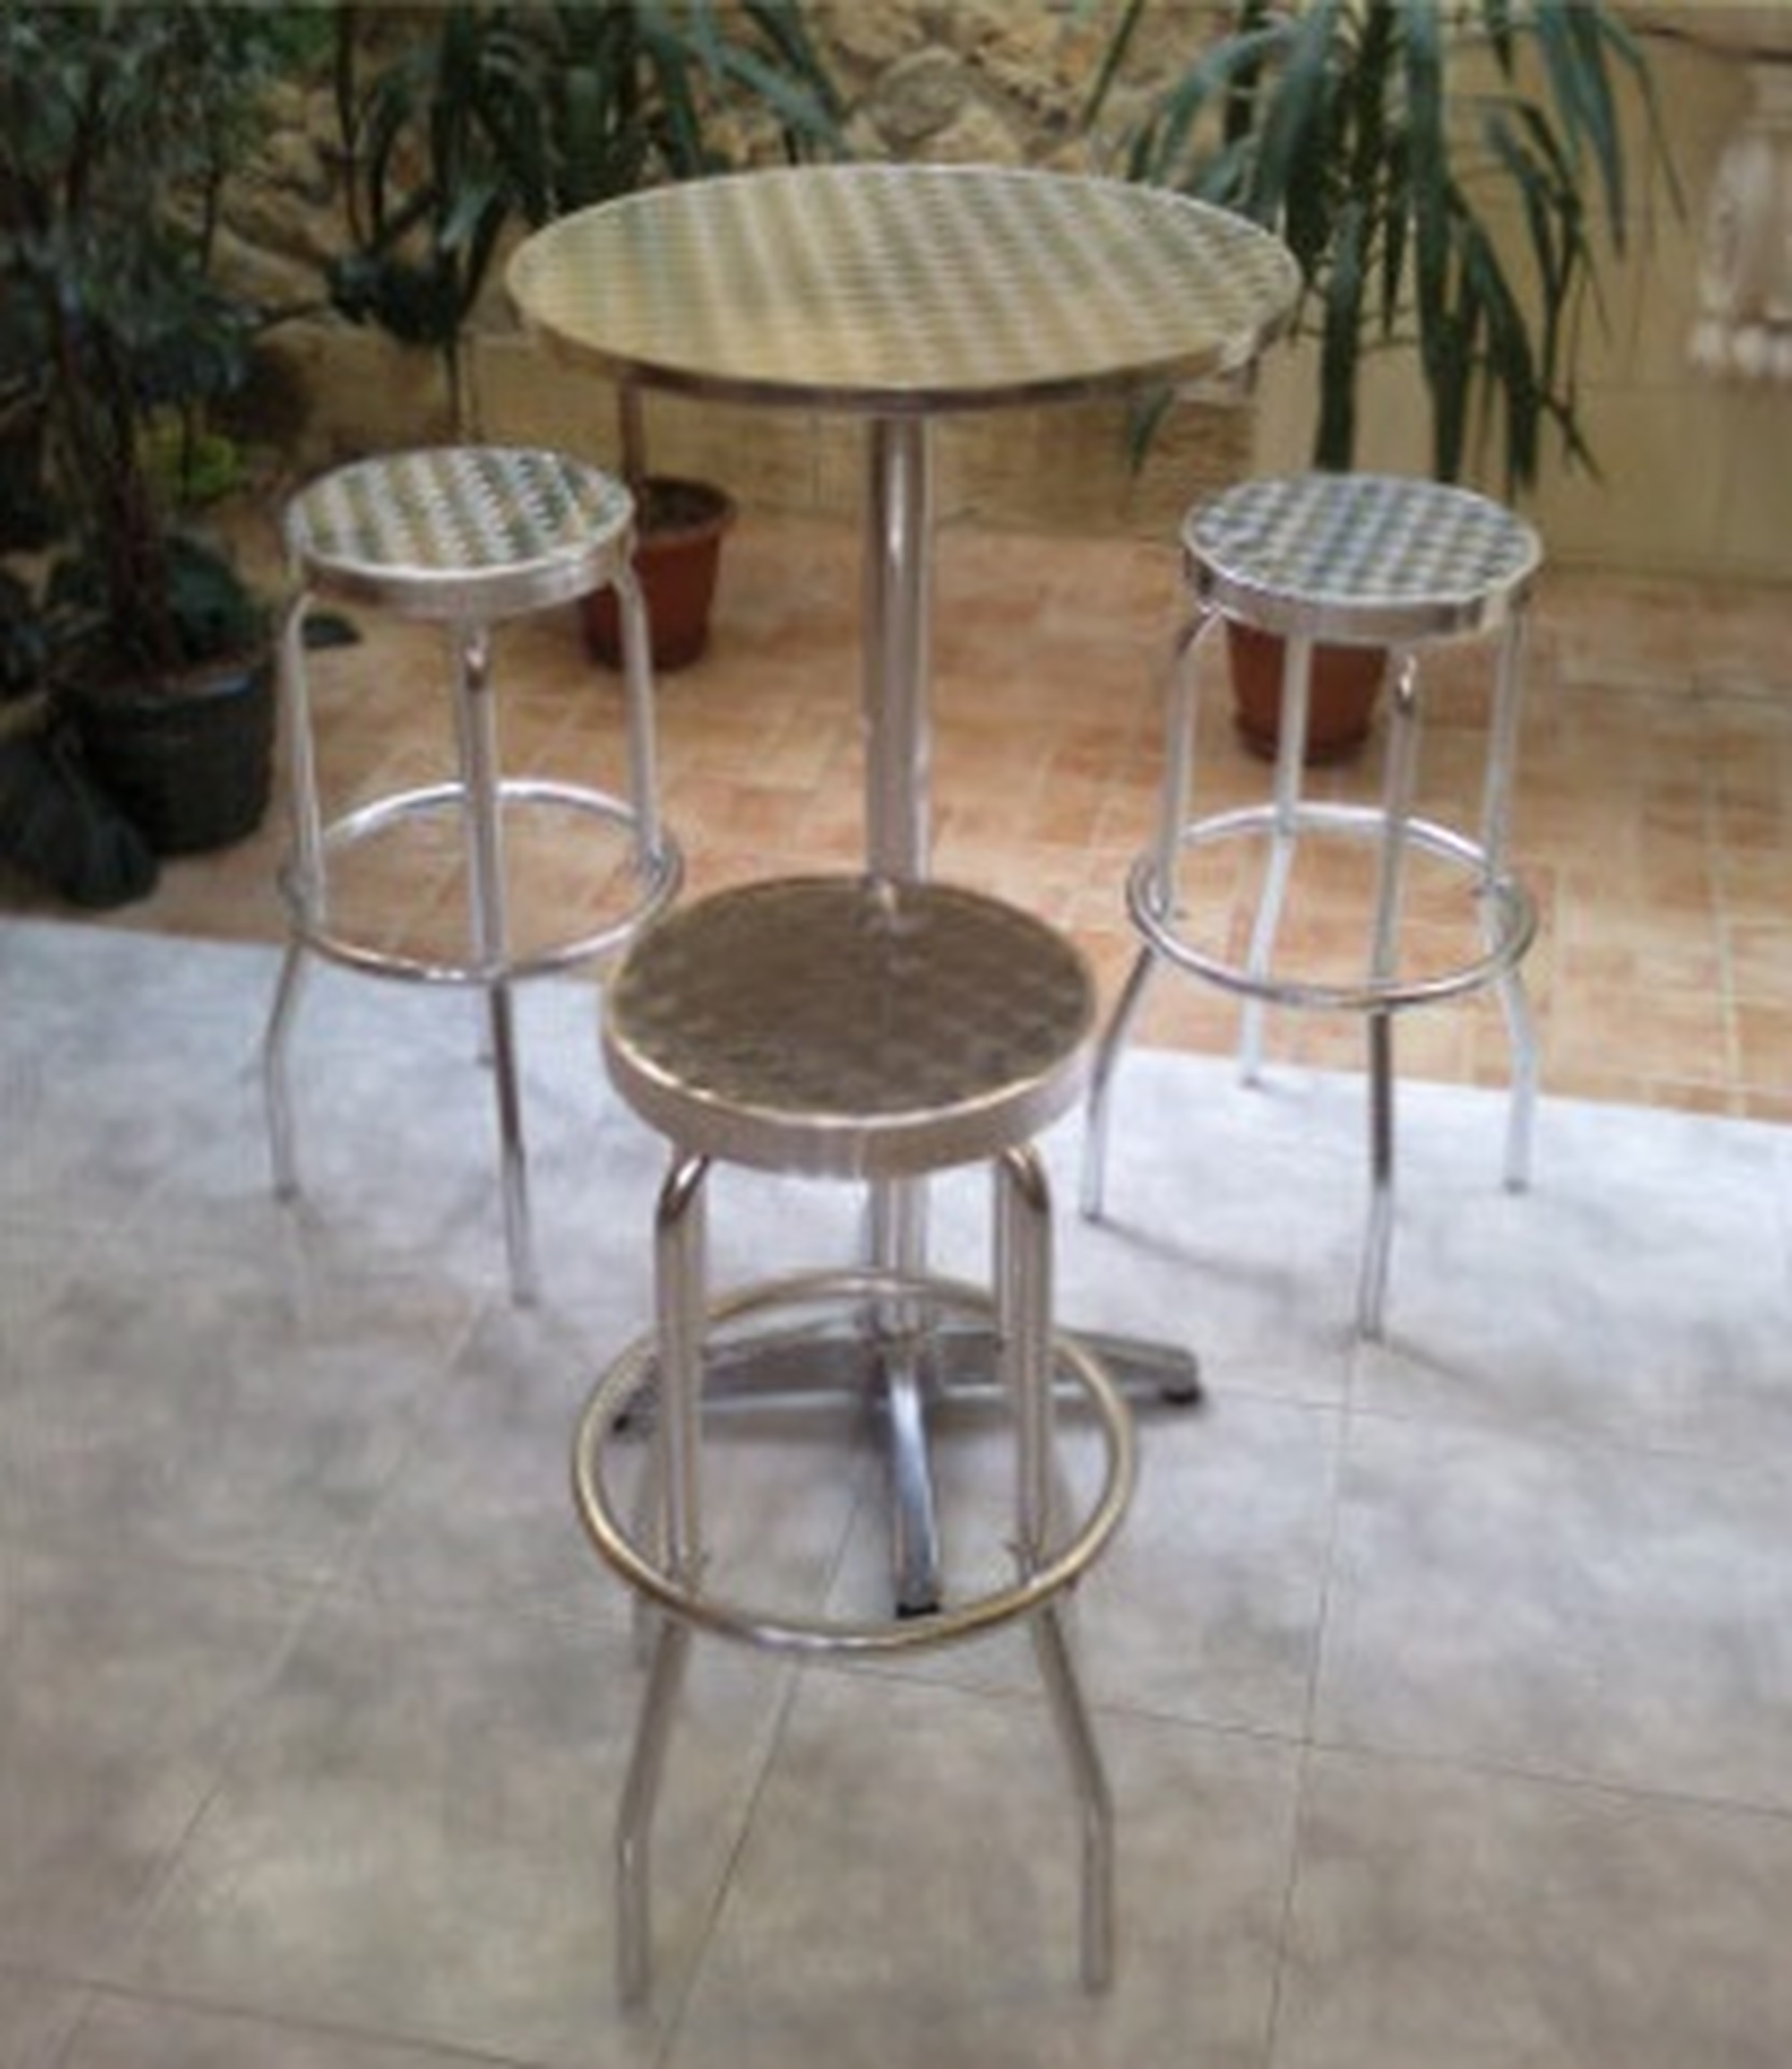 Kitchen Stools Malta: Rent Aluminium Tables & Stools In Malta.